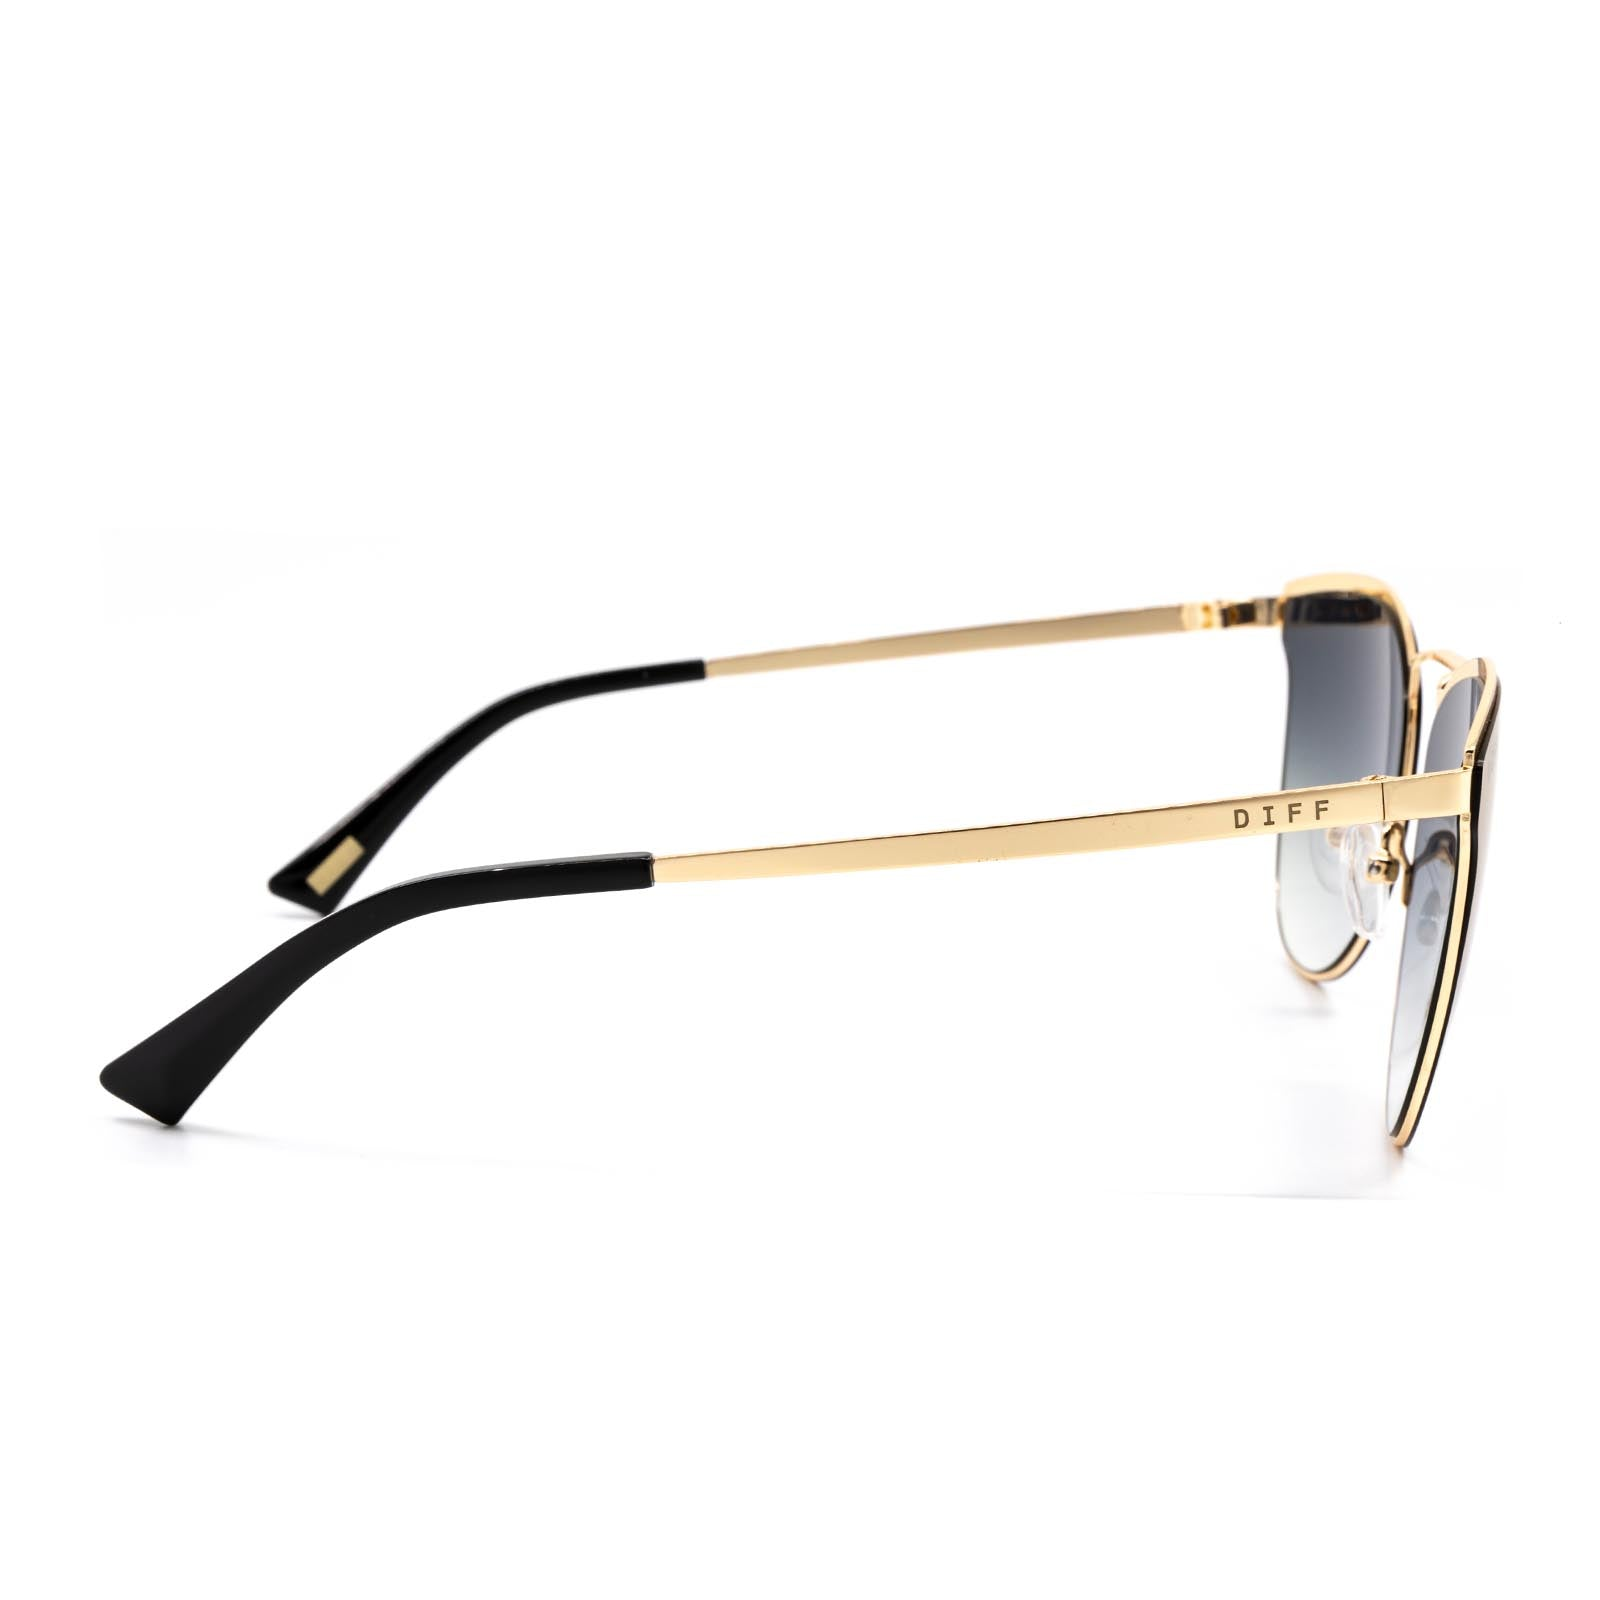 Sadie sunglasses with gold frame and purple lens- side view